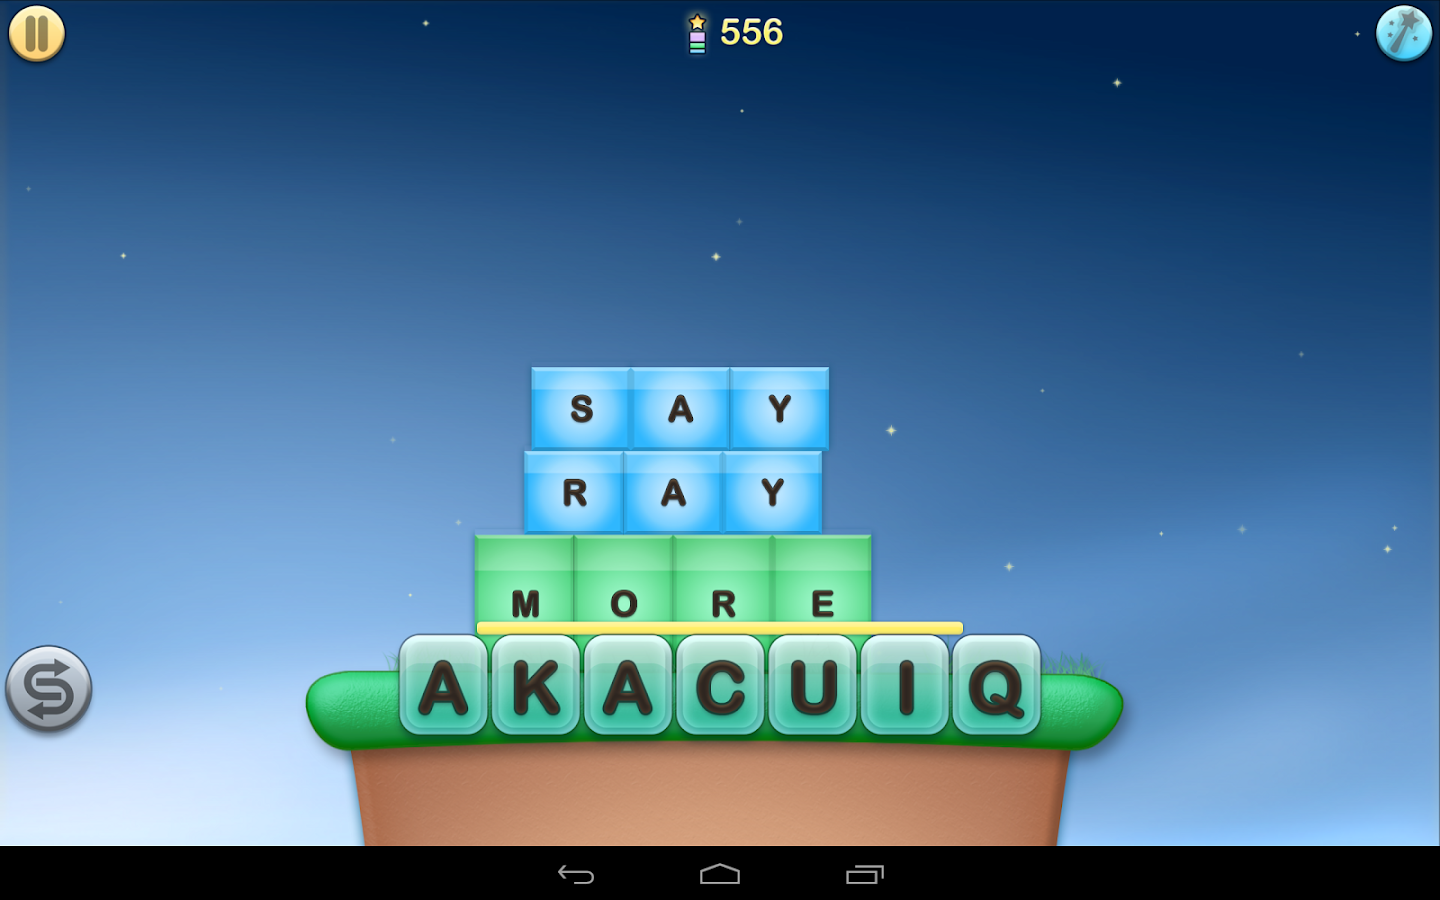 Jumbline 2 - word game puzzle - screenshot